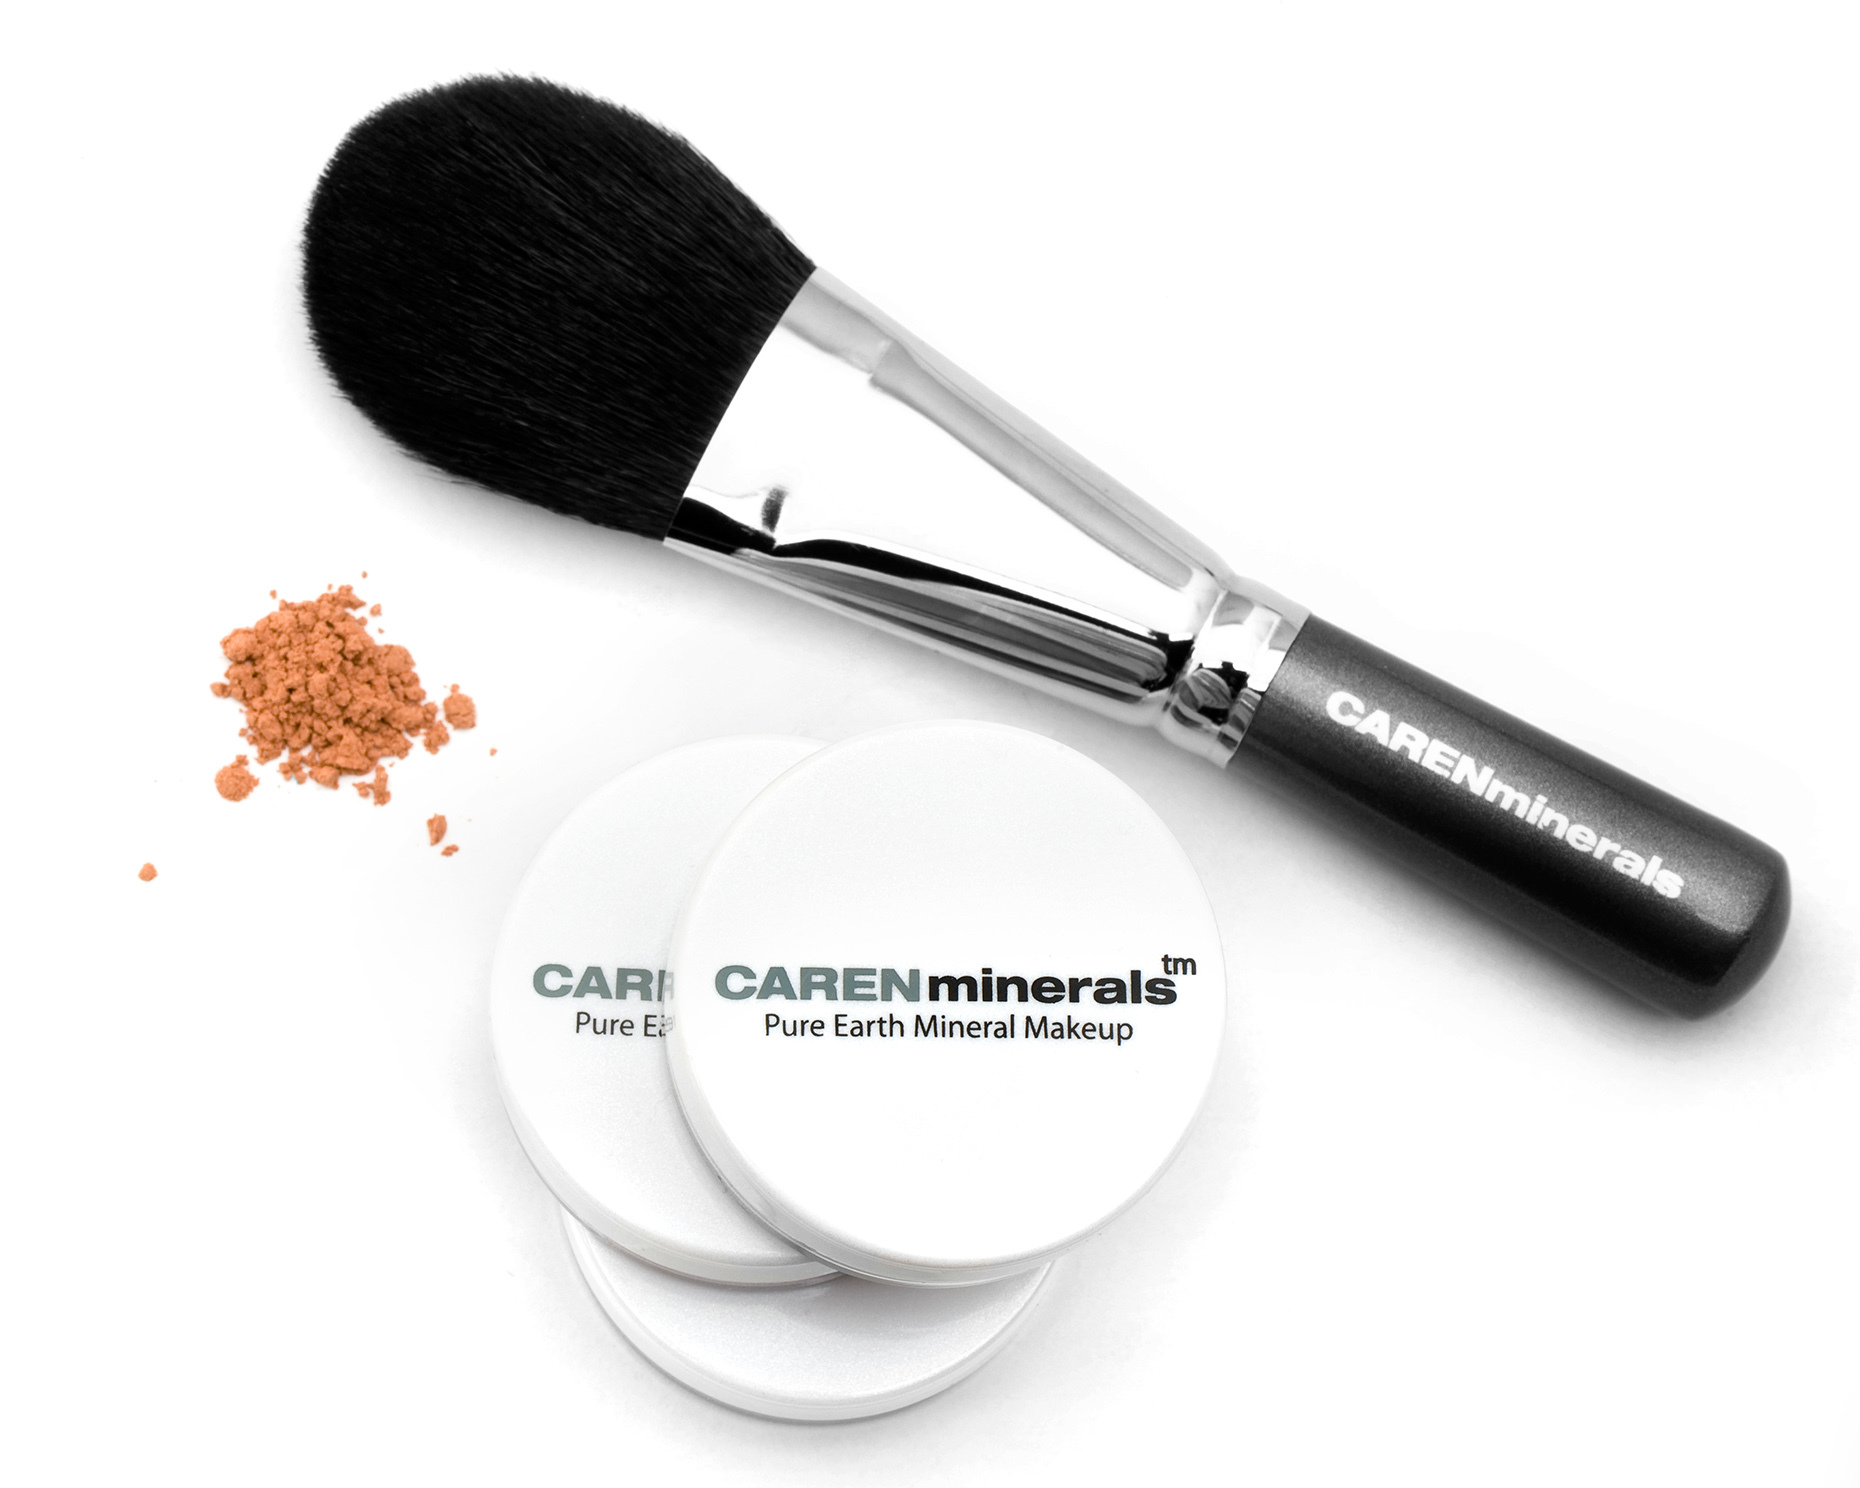 Caren-Minerals-Powder-and-Brush-set_RHanelPhotography